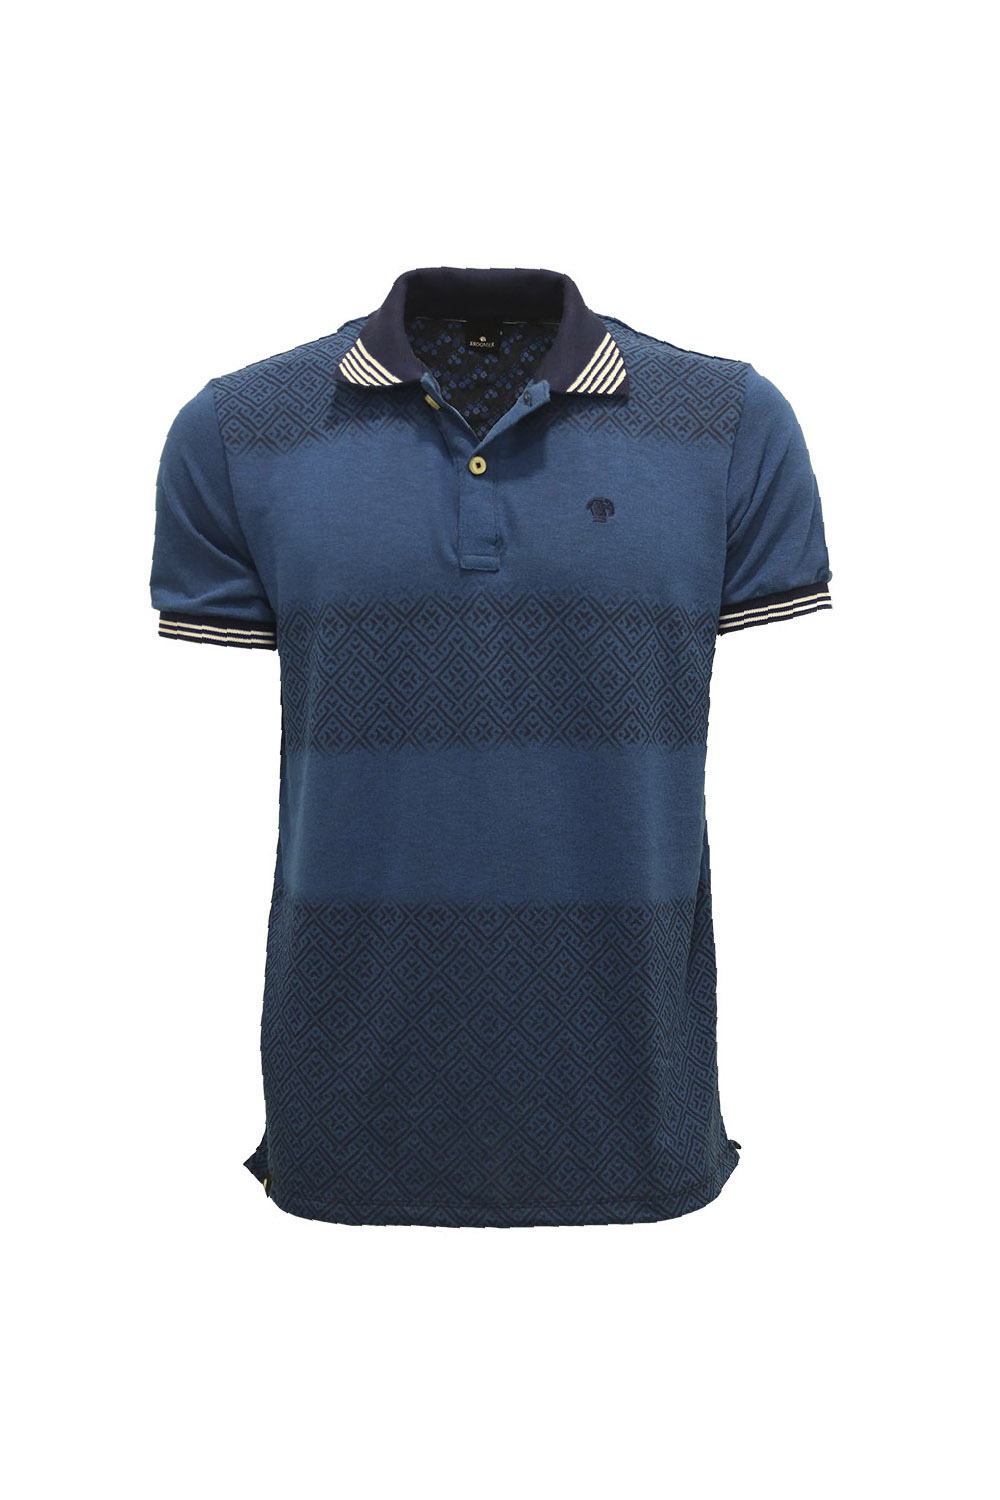 POLO MC CASUAL SLIM POLIALGODAO COMPOSE ESTAMPA AZUL MARINHO